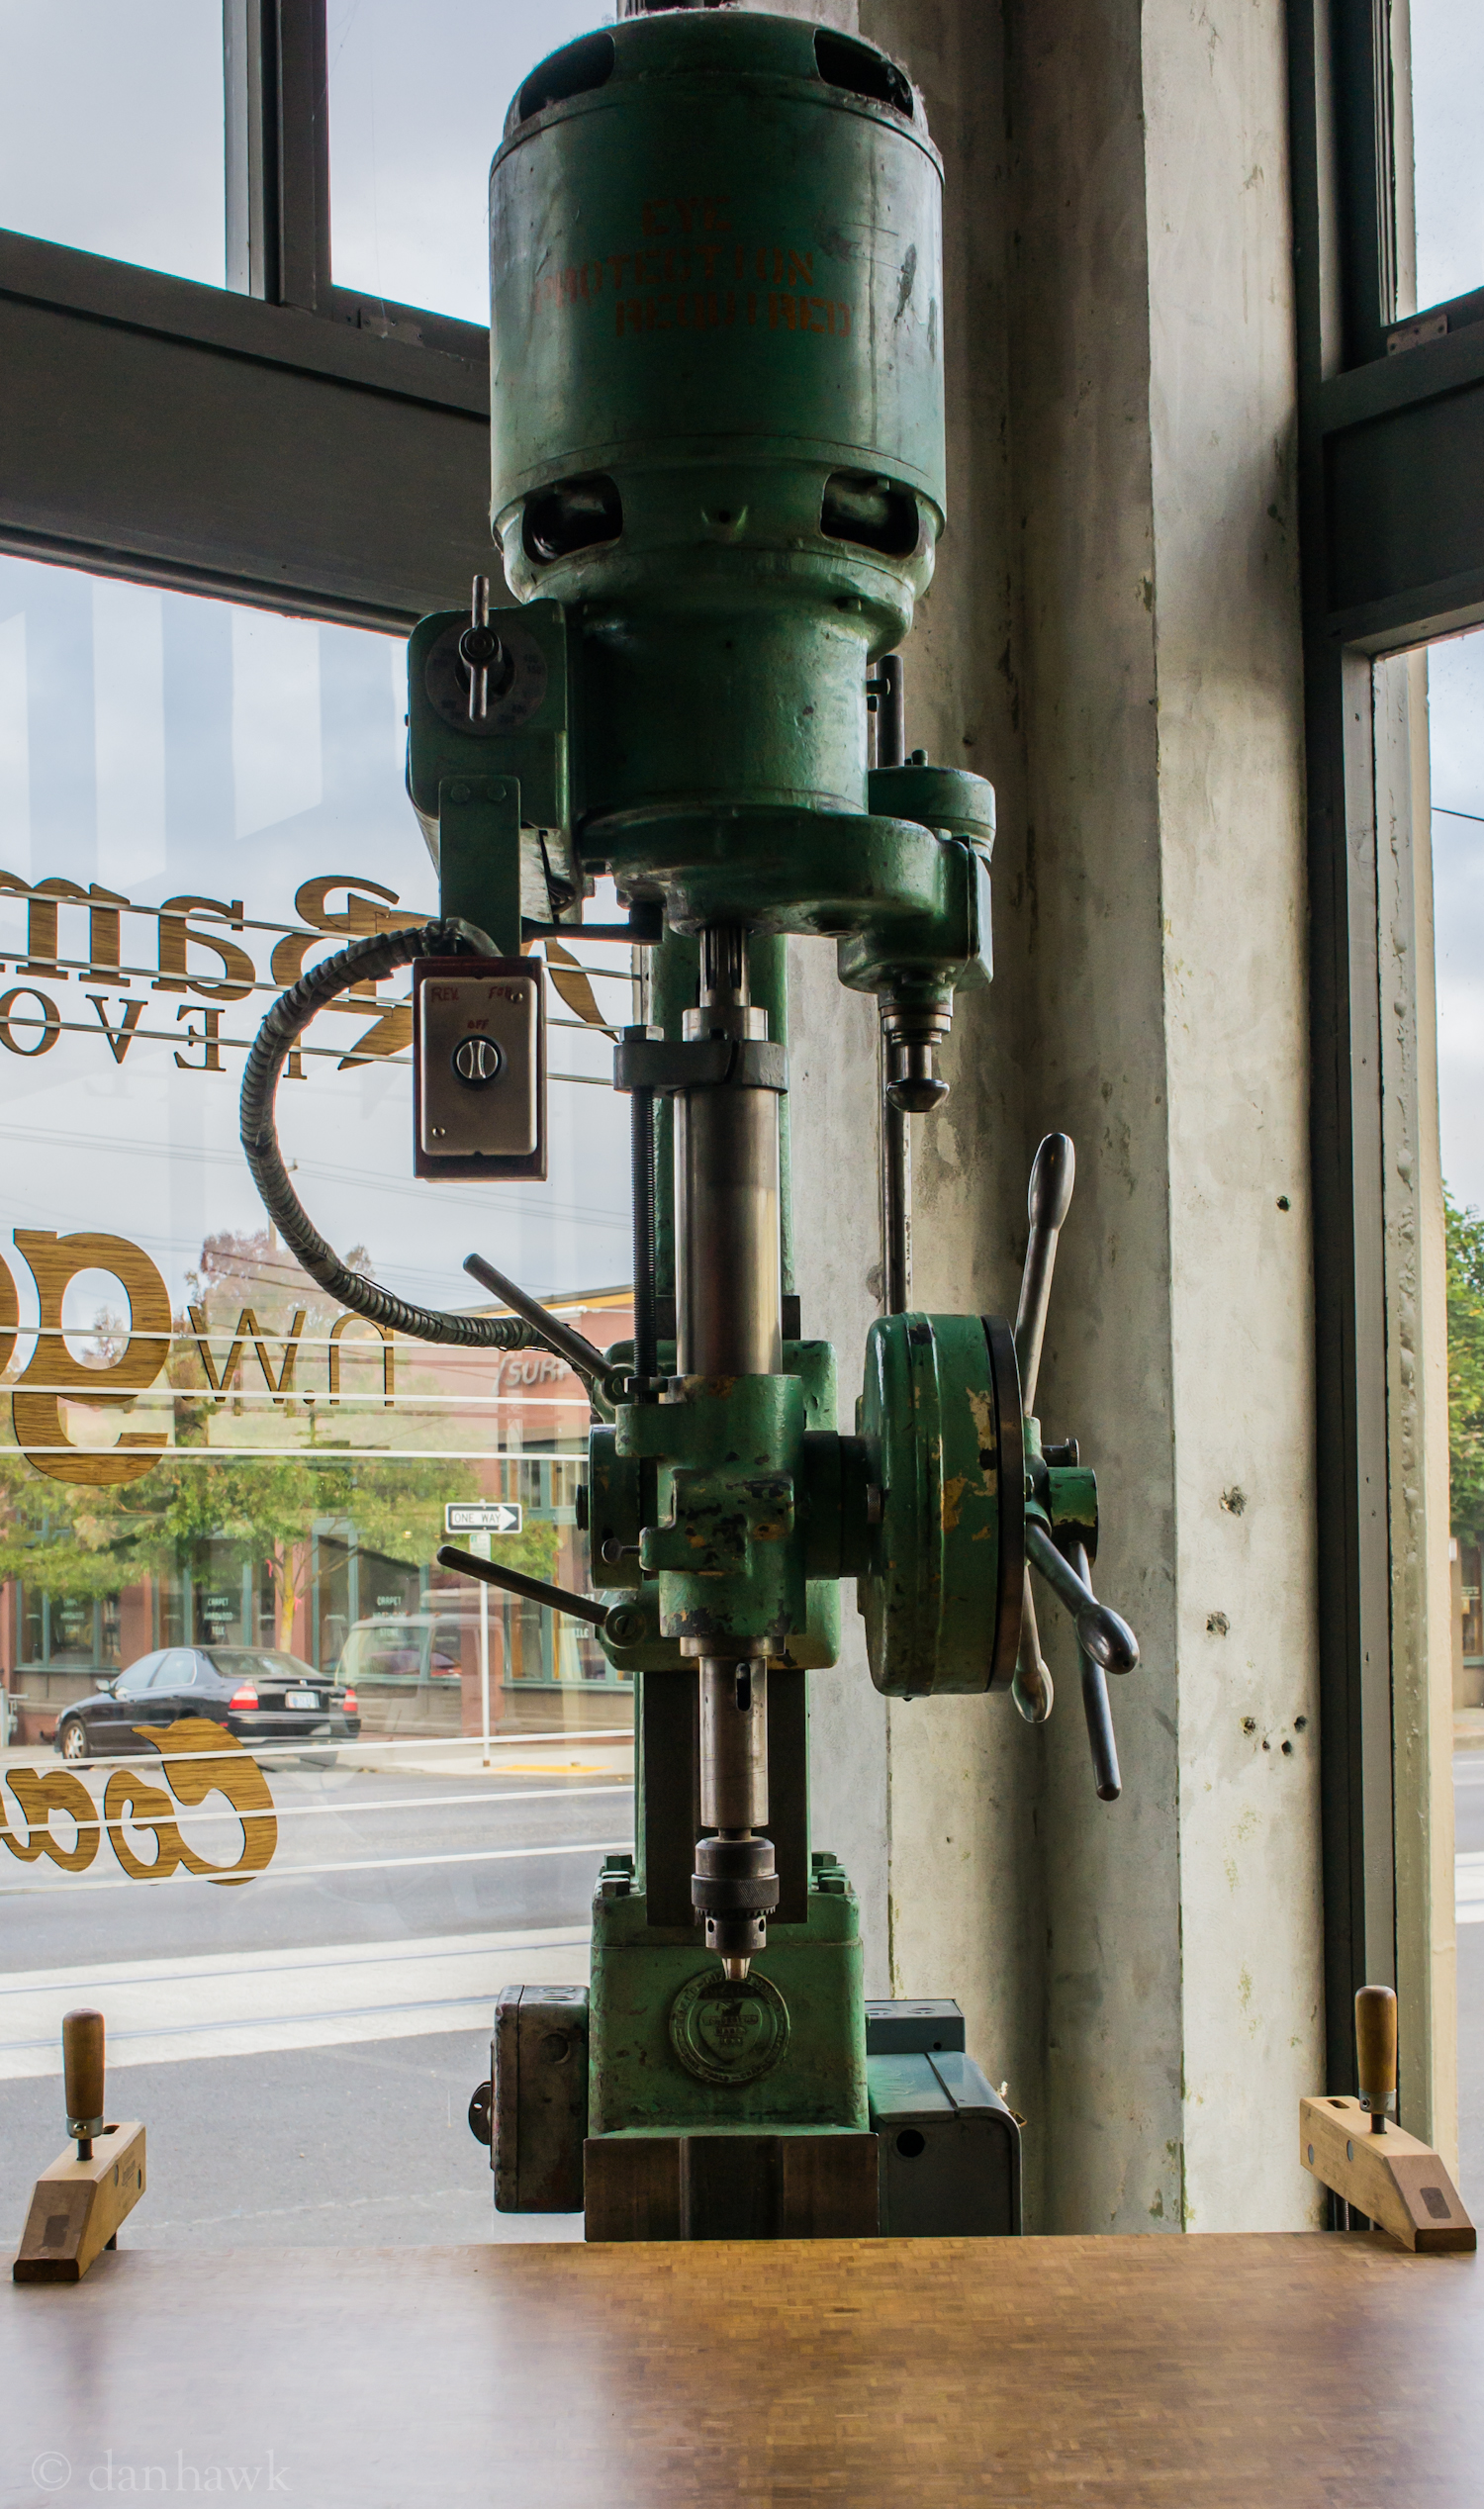 Drill Press | 365 Project | Oct 2nd, 2012 | Coava Coffee Roasters